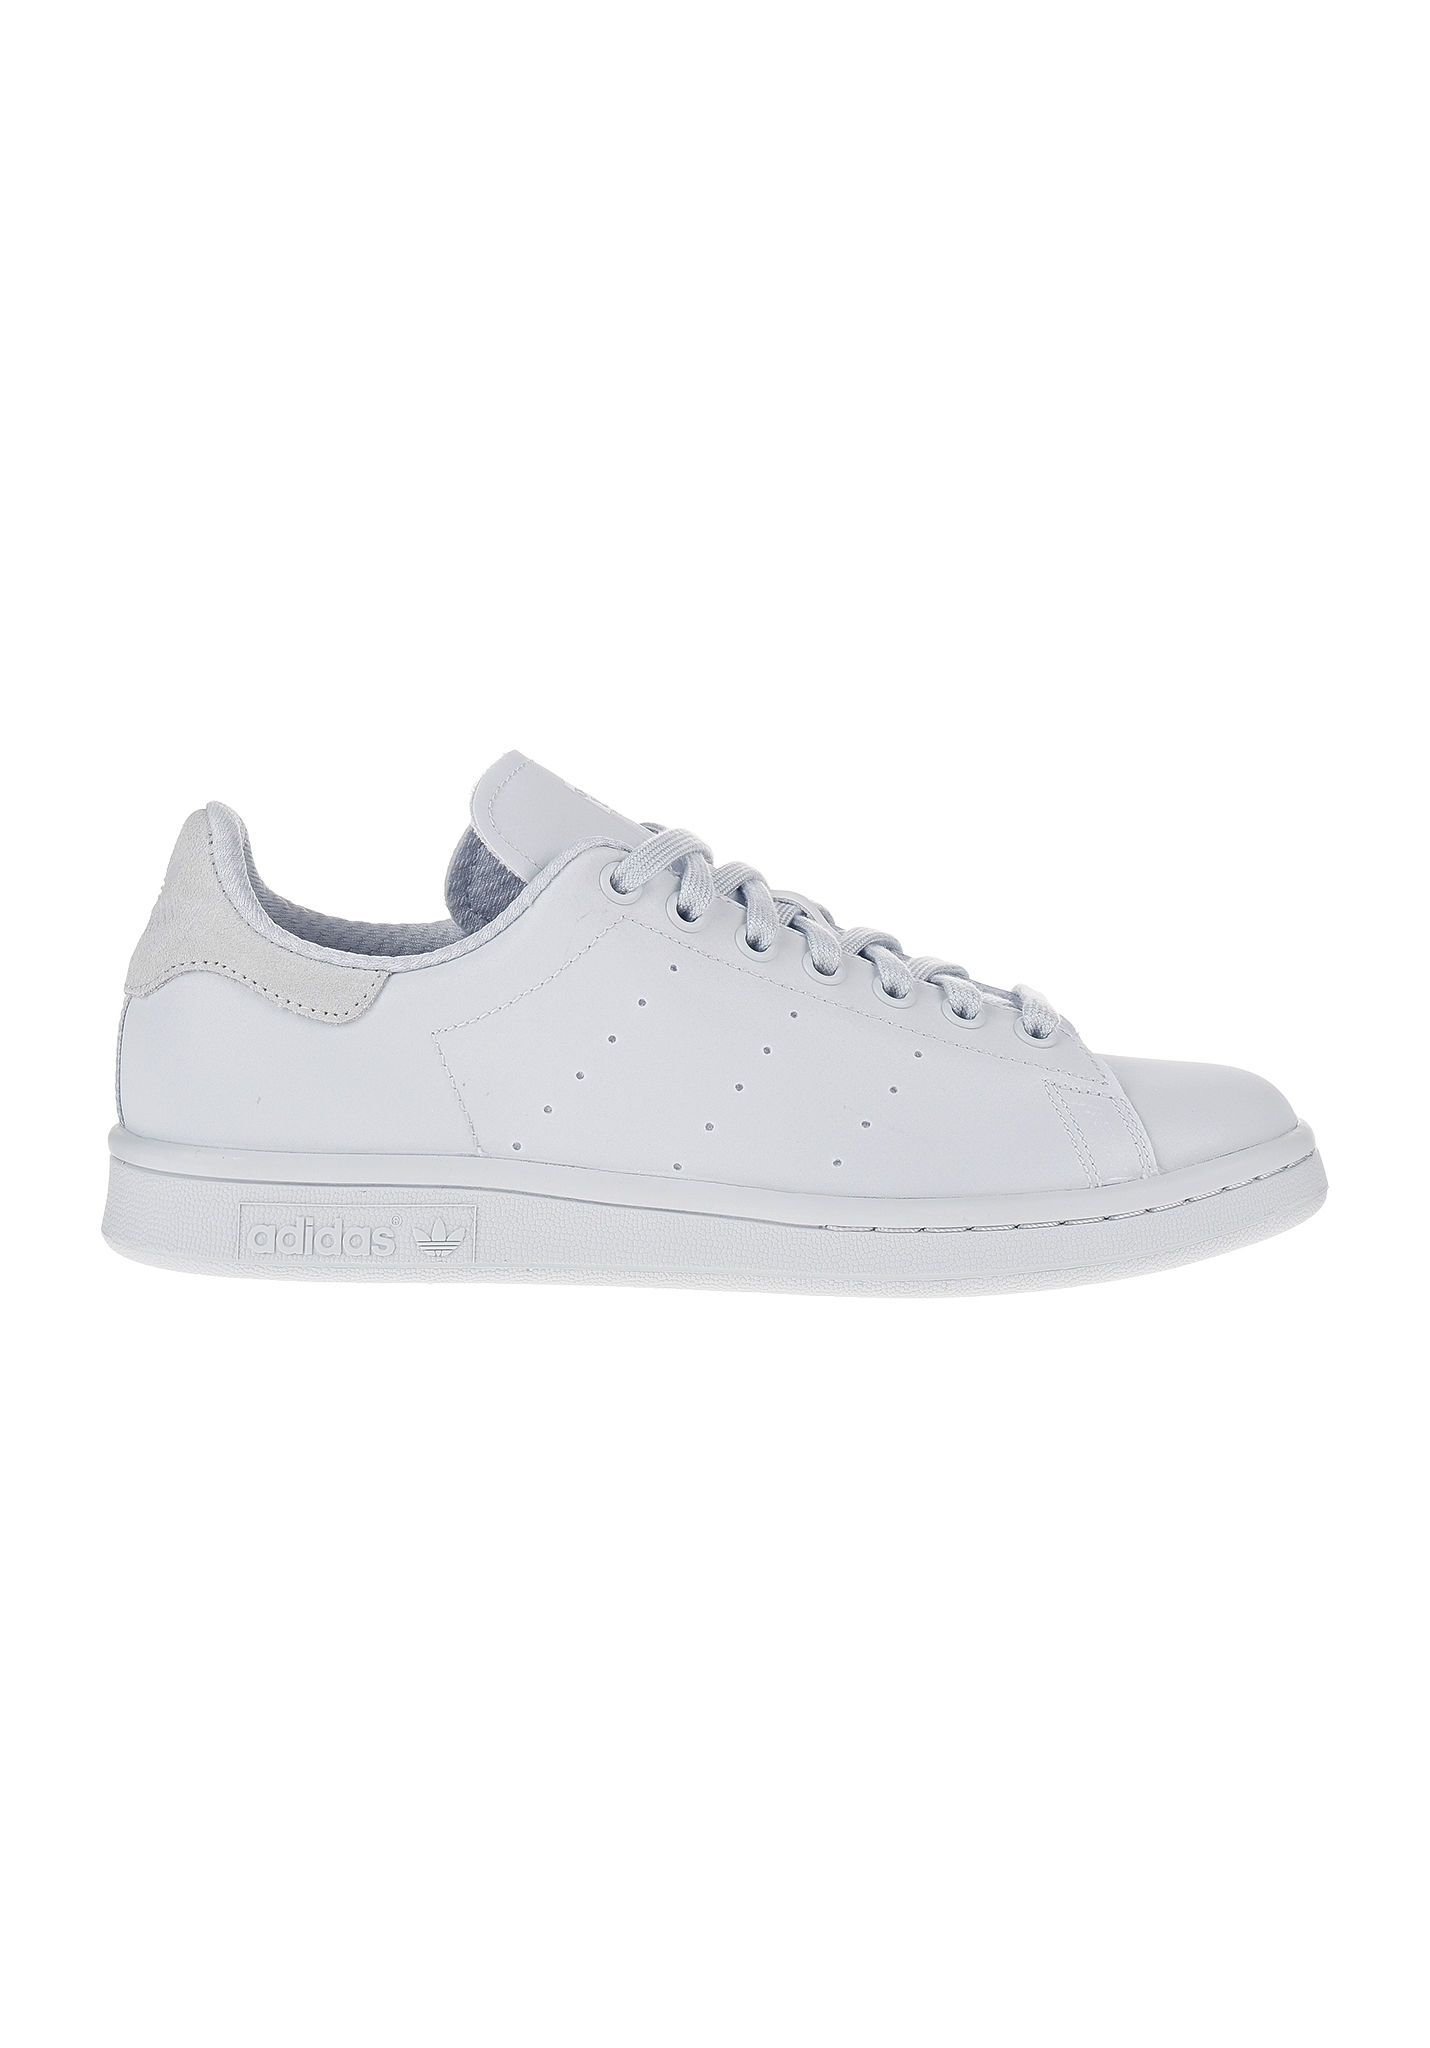 Stan Smith Adidas Stoff